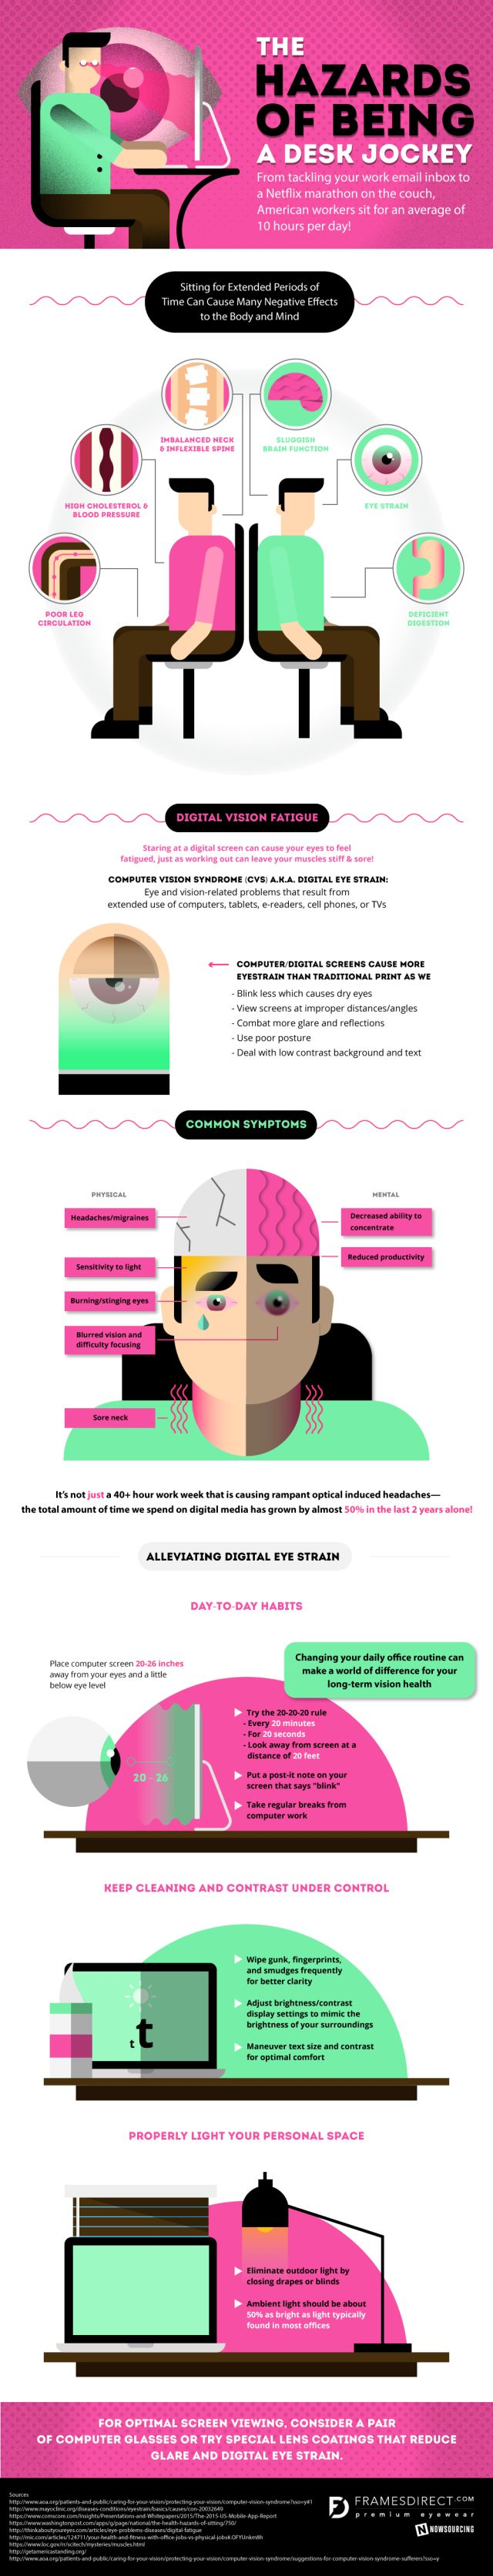 Computer Vision Syndrome #infographic